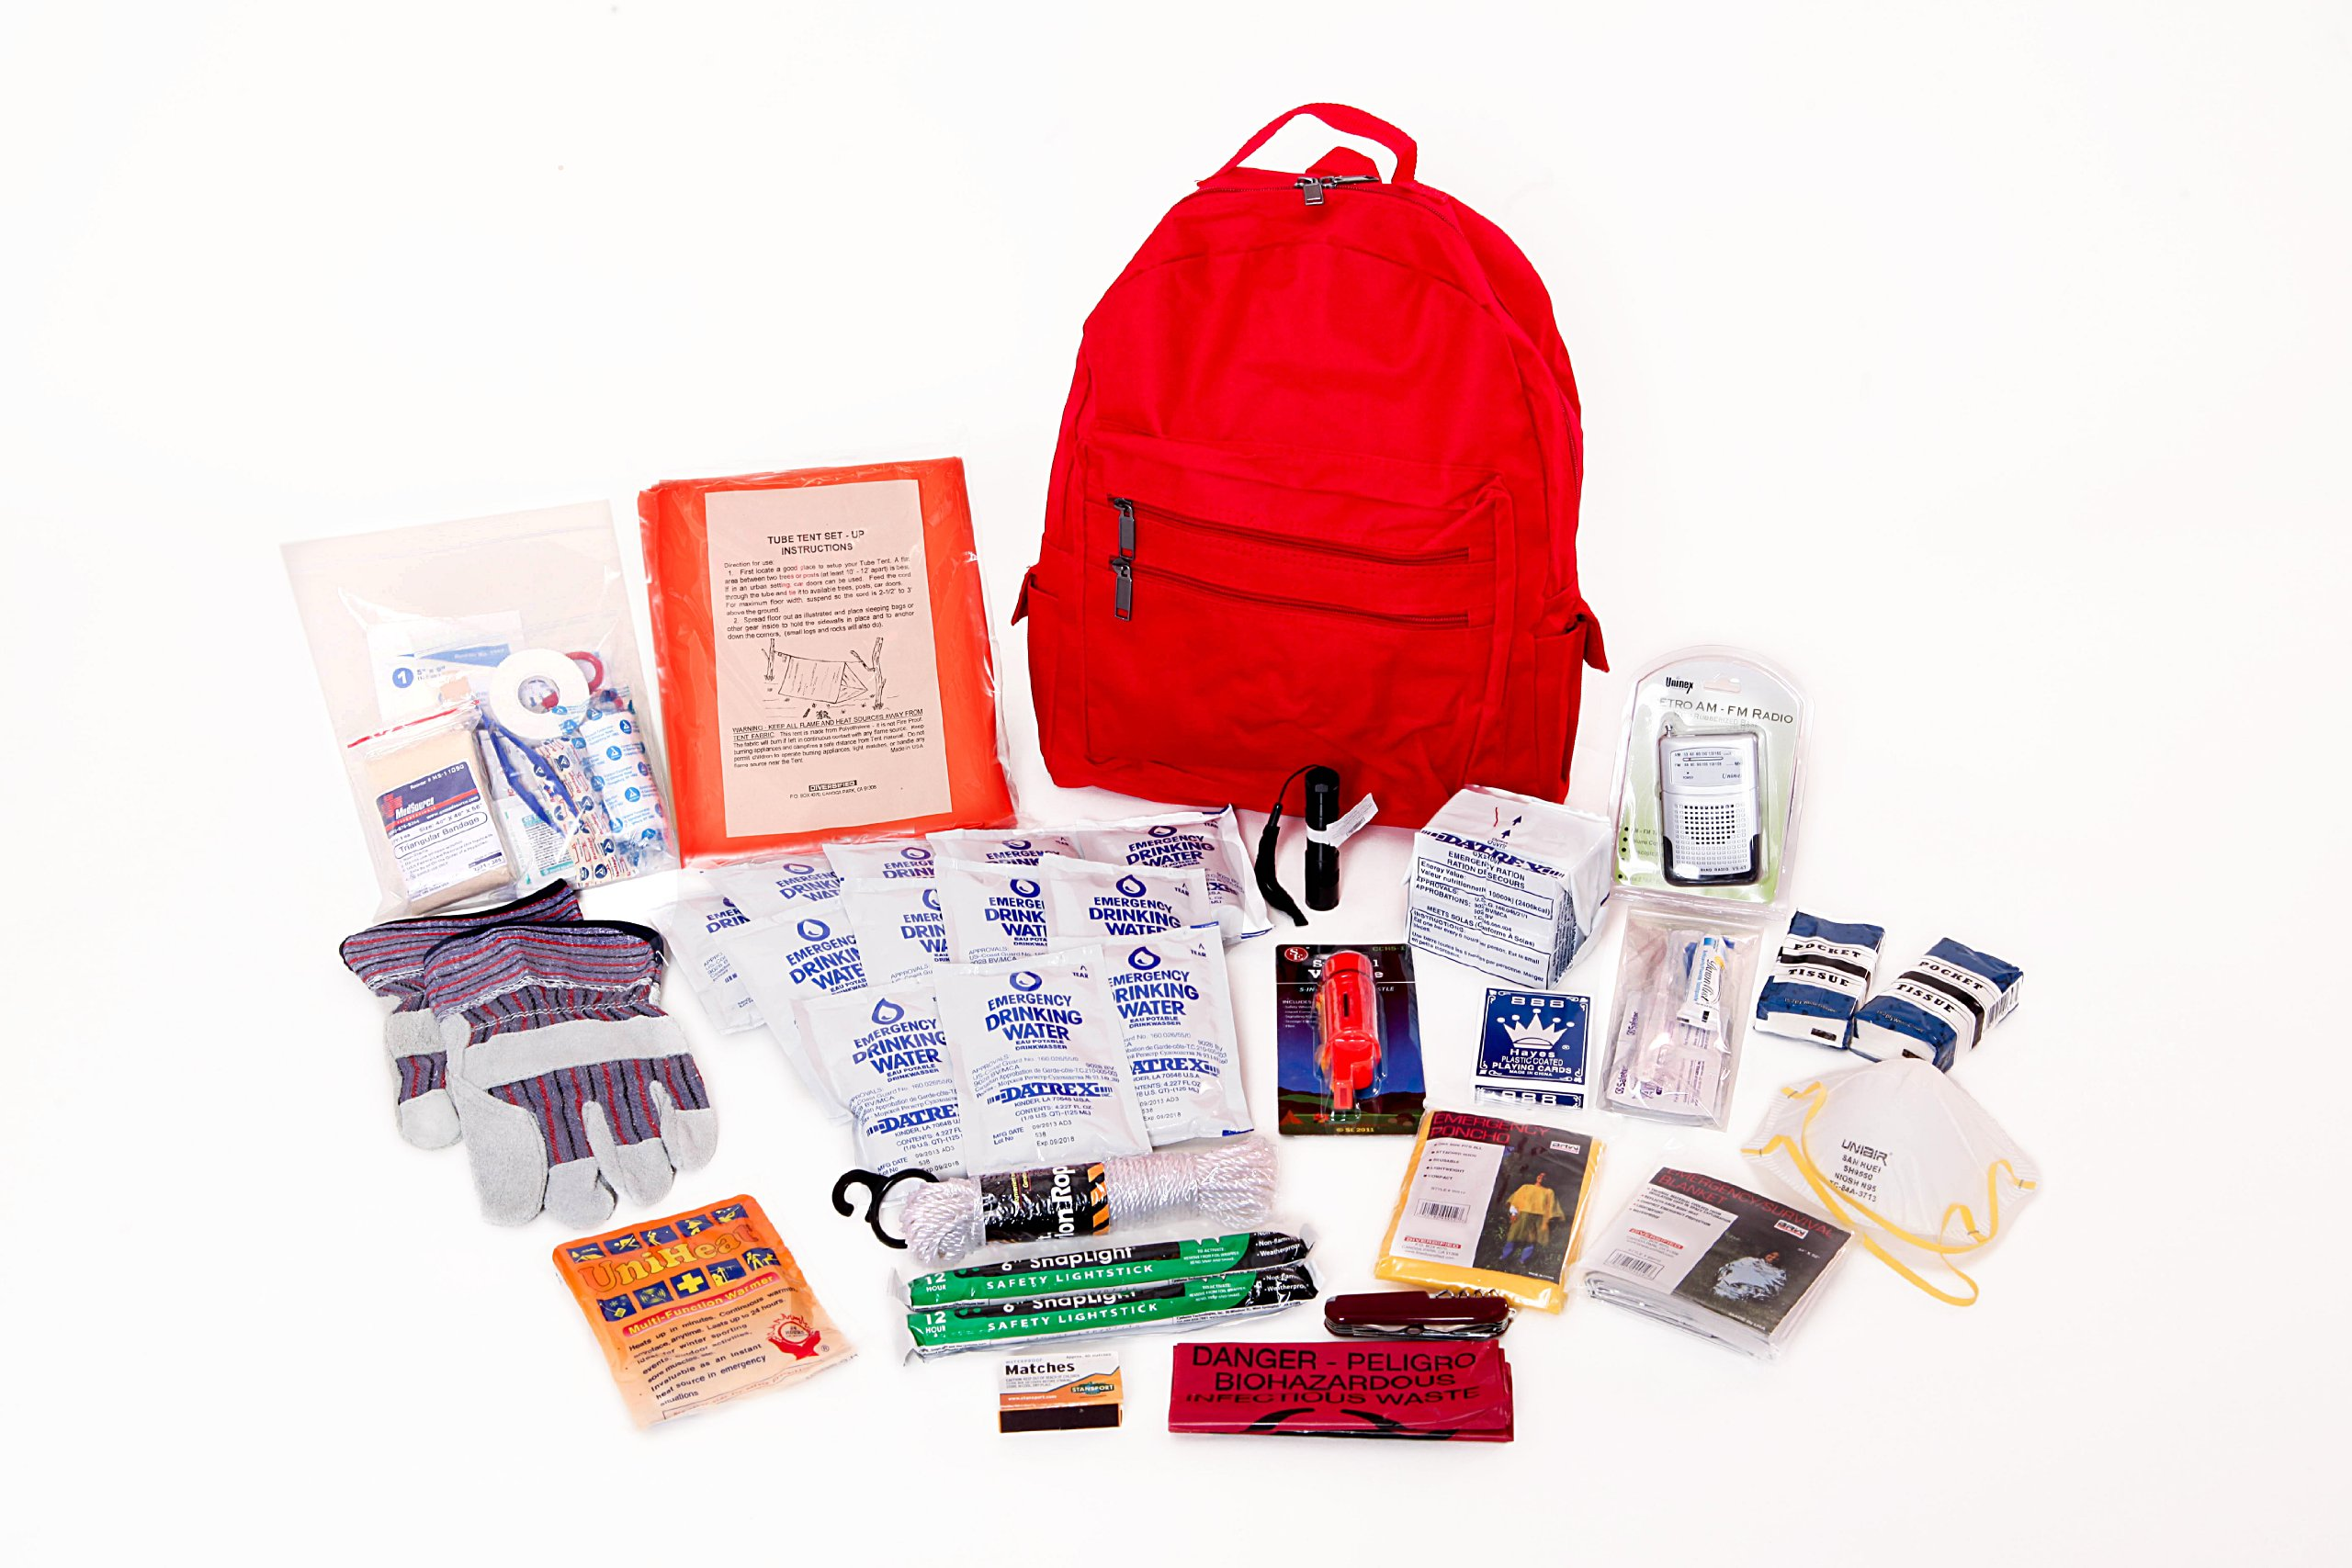 1 Person Deluxe Survival Kit Ideal for Earthquake, Evacuation, Emergency Disaster Preparedness 72 Hour Kits for Home, Work or Auto: 1 Person by Survival Prep Warehouse